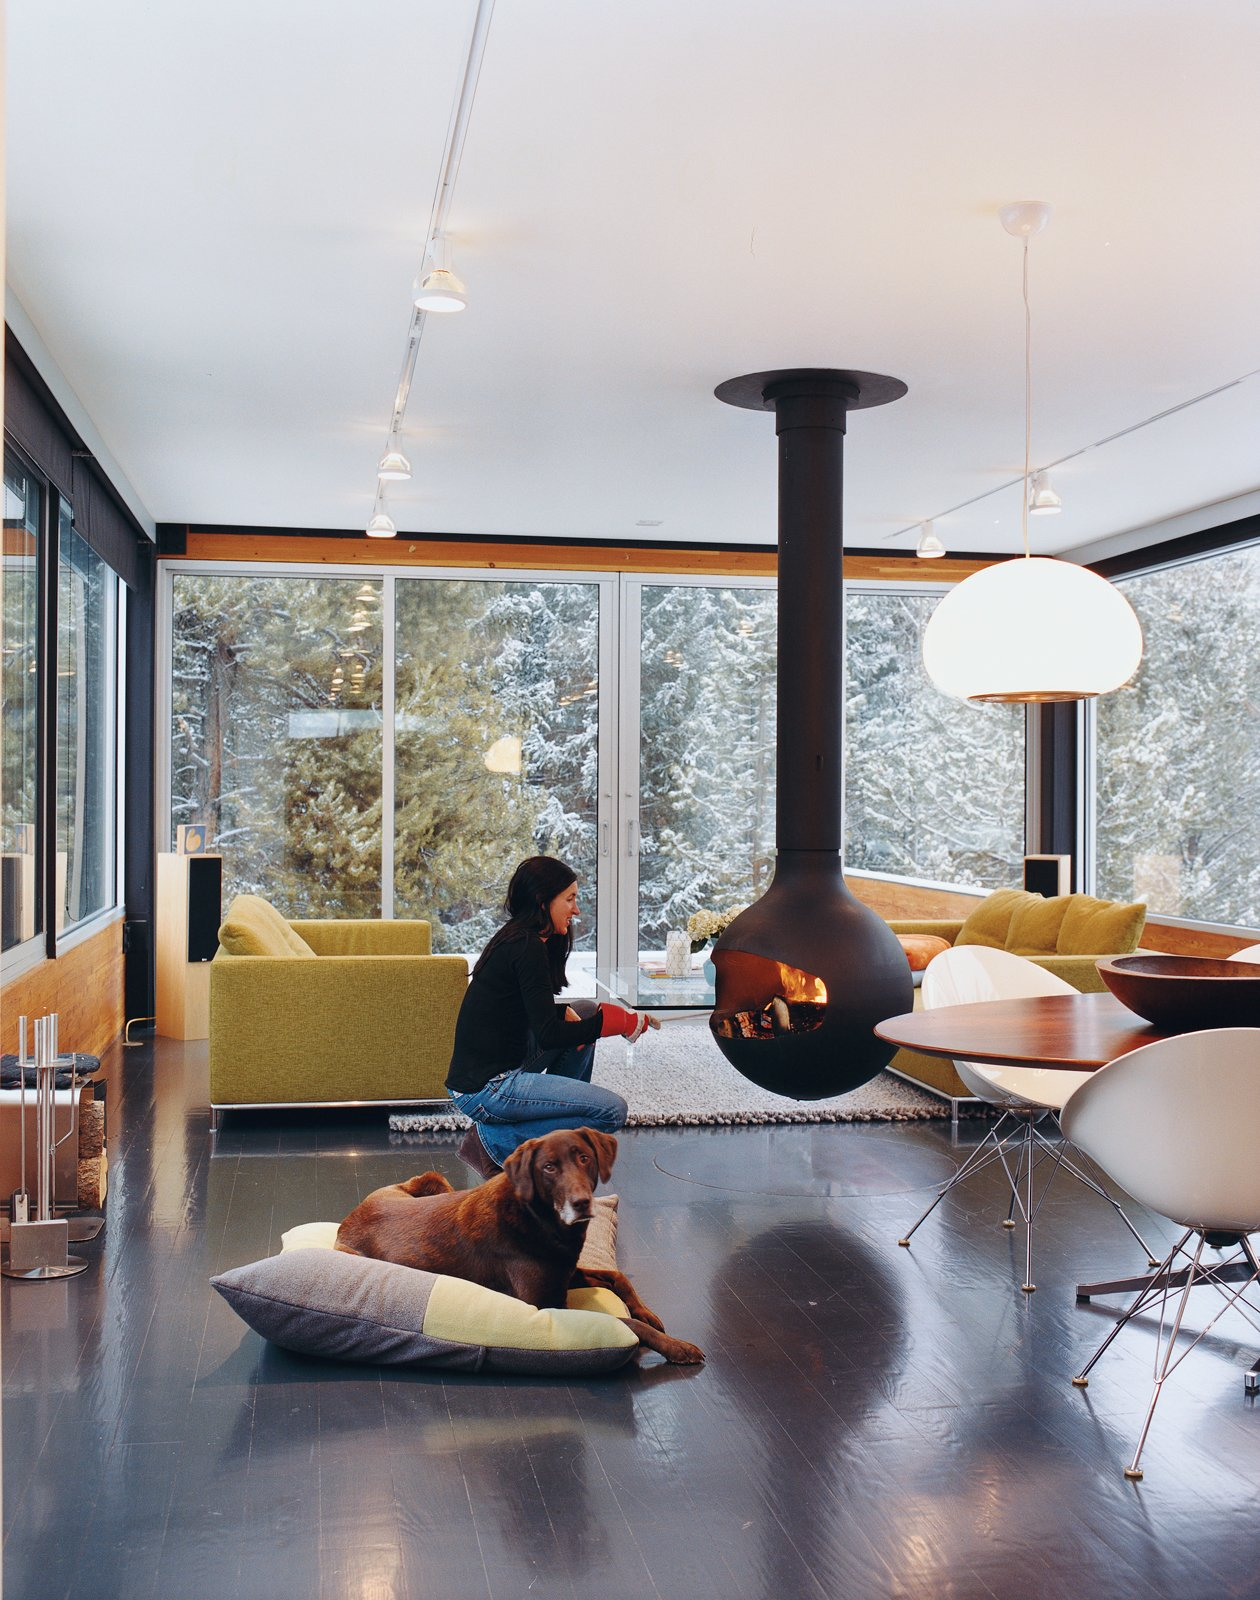 #fireplace #livingroom #central #landscape #form #structure #shape #dynamic #windows #lighting #dog #mountains #Bathyscafocus #FocusCreations   60+ Modern Lighting Solutions by Dwell from Dogs Who Love Modern Design